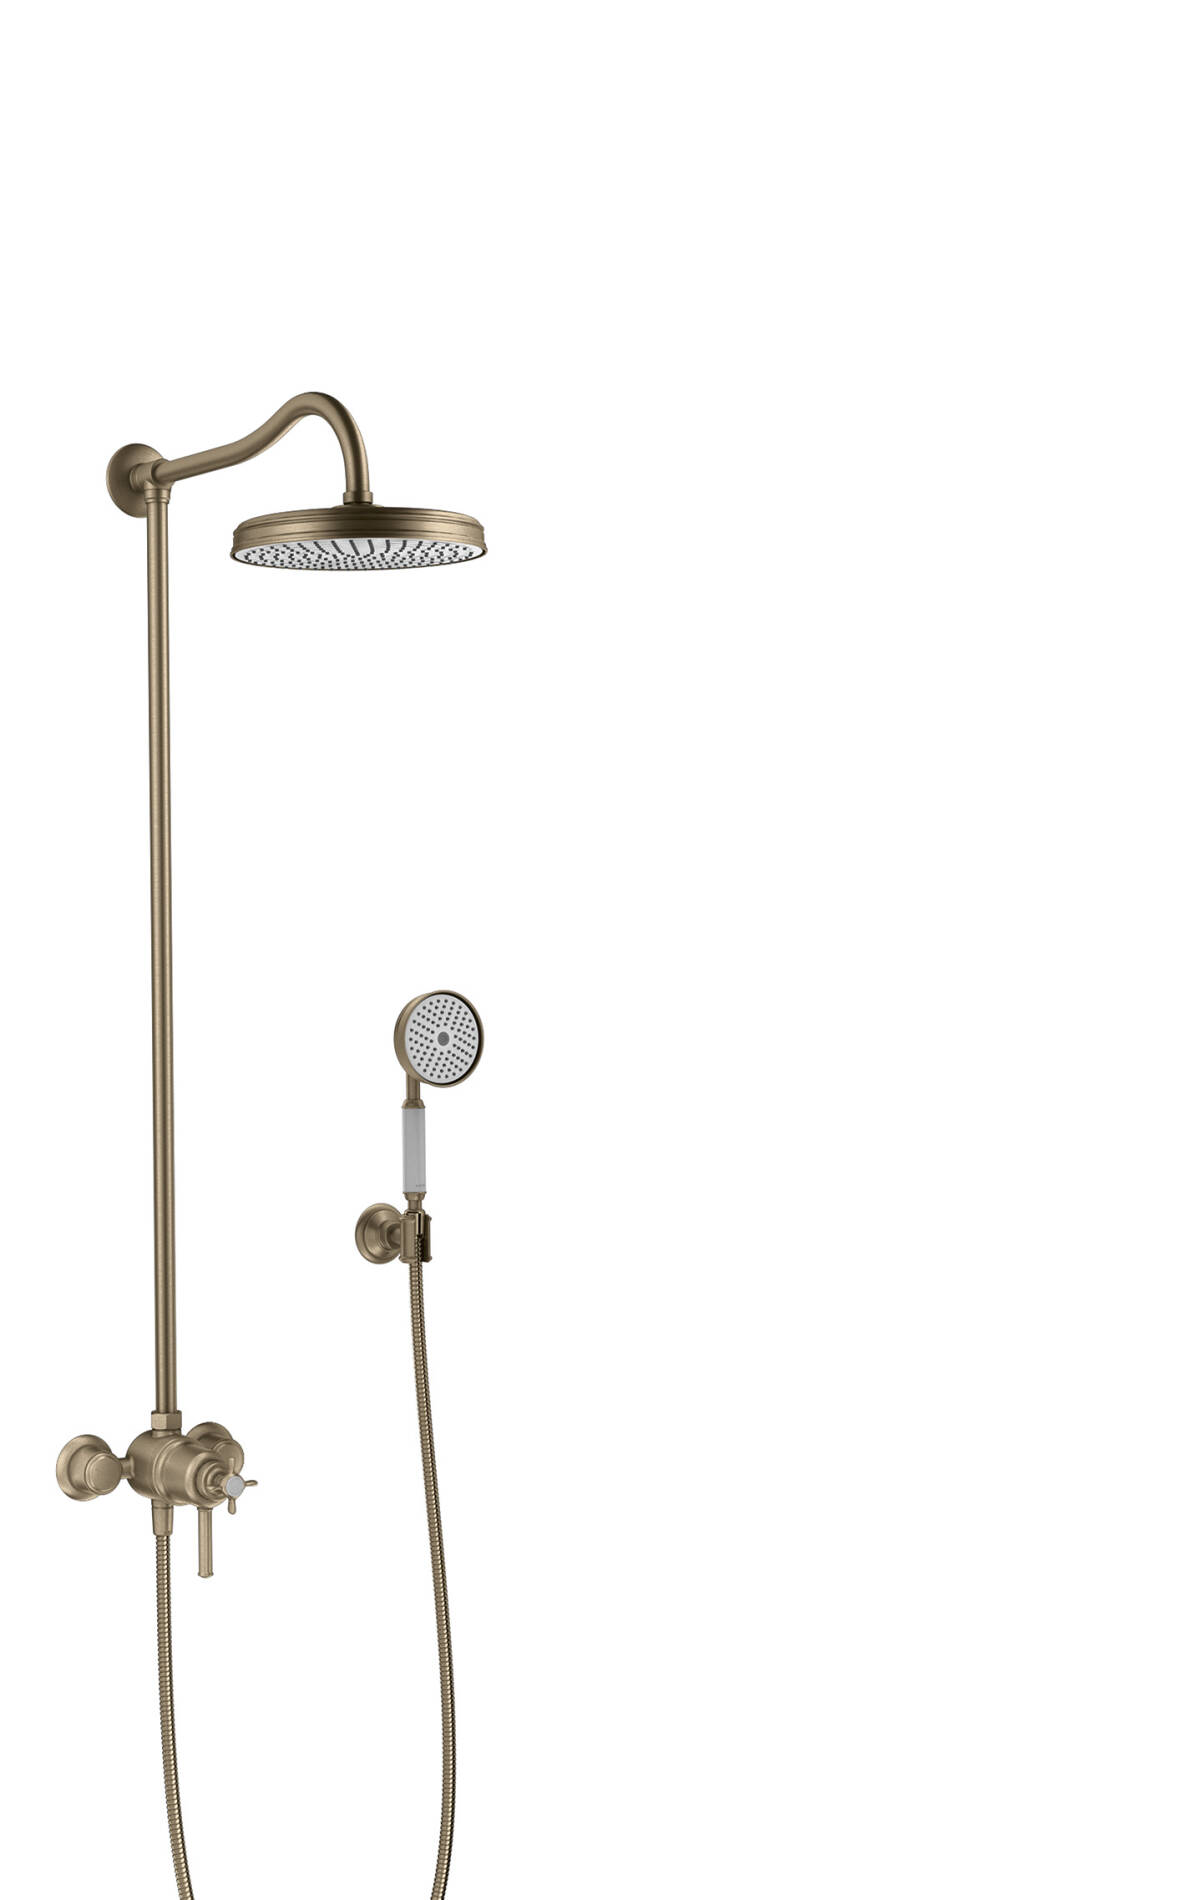 Showerpipe with thermostatic mixer and 1jet overhead shower, Brushed Nickel, 16570820